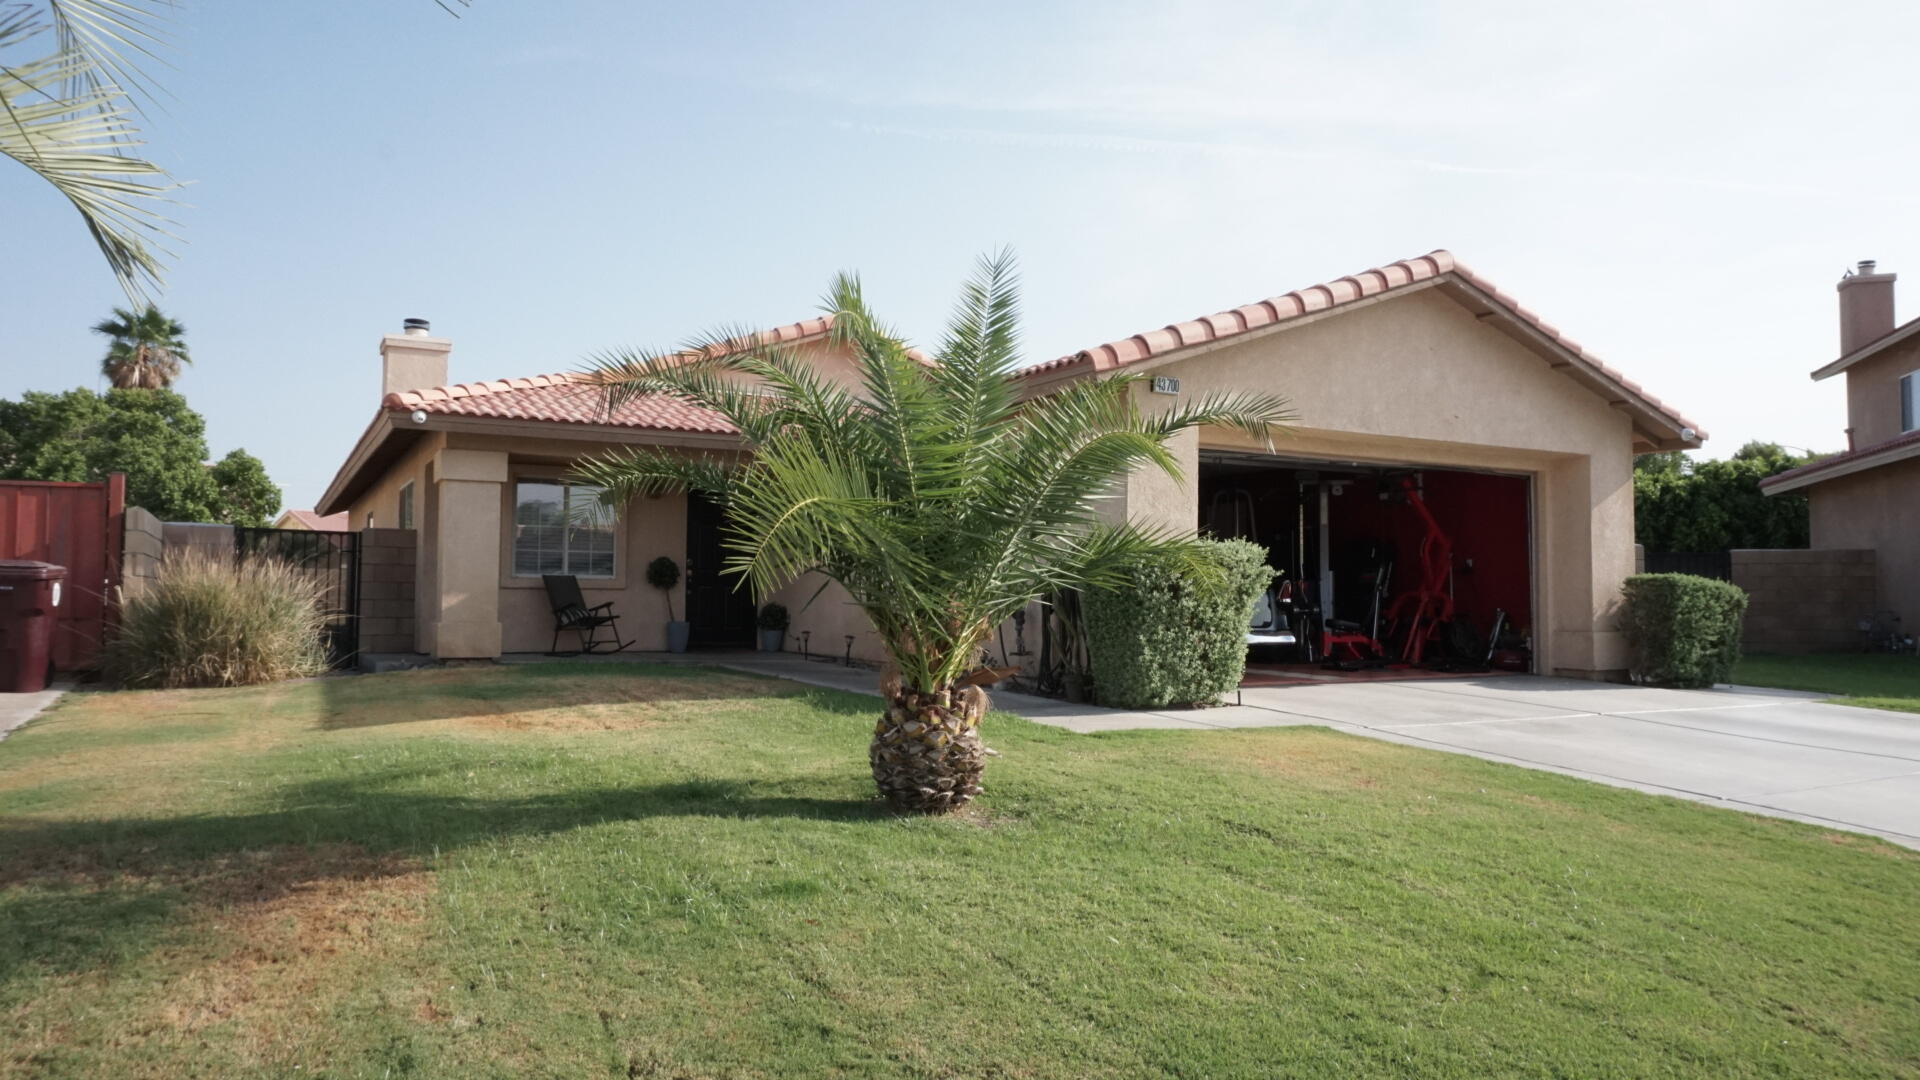 Ahh, Peace & Privacy! Come enjoy this comfortably upgraded home with a large side & rear yard with a pool, palms & grass for these hot summer months. Three bedrooms, two full bathrooms & a great living/ dining room with a comfortable fitted patio for as much outdoor enjoyment as you can get! Gorgeous upgraded appliances, polished wood kitchen cabinets/ others throughout & tile throughout has been maintained & kept in great condition. The outdoor patio has lights, misters & shade screens that make for outdoor entertainment & enjoyment a breeze. And when these winter nights come around flip on the fireplace to enjoy warmth through the house. This home has a lot to offer in a great location with great neighbors! Come see for yourself!